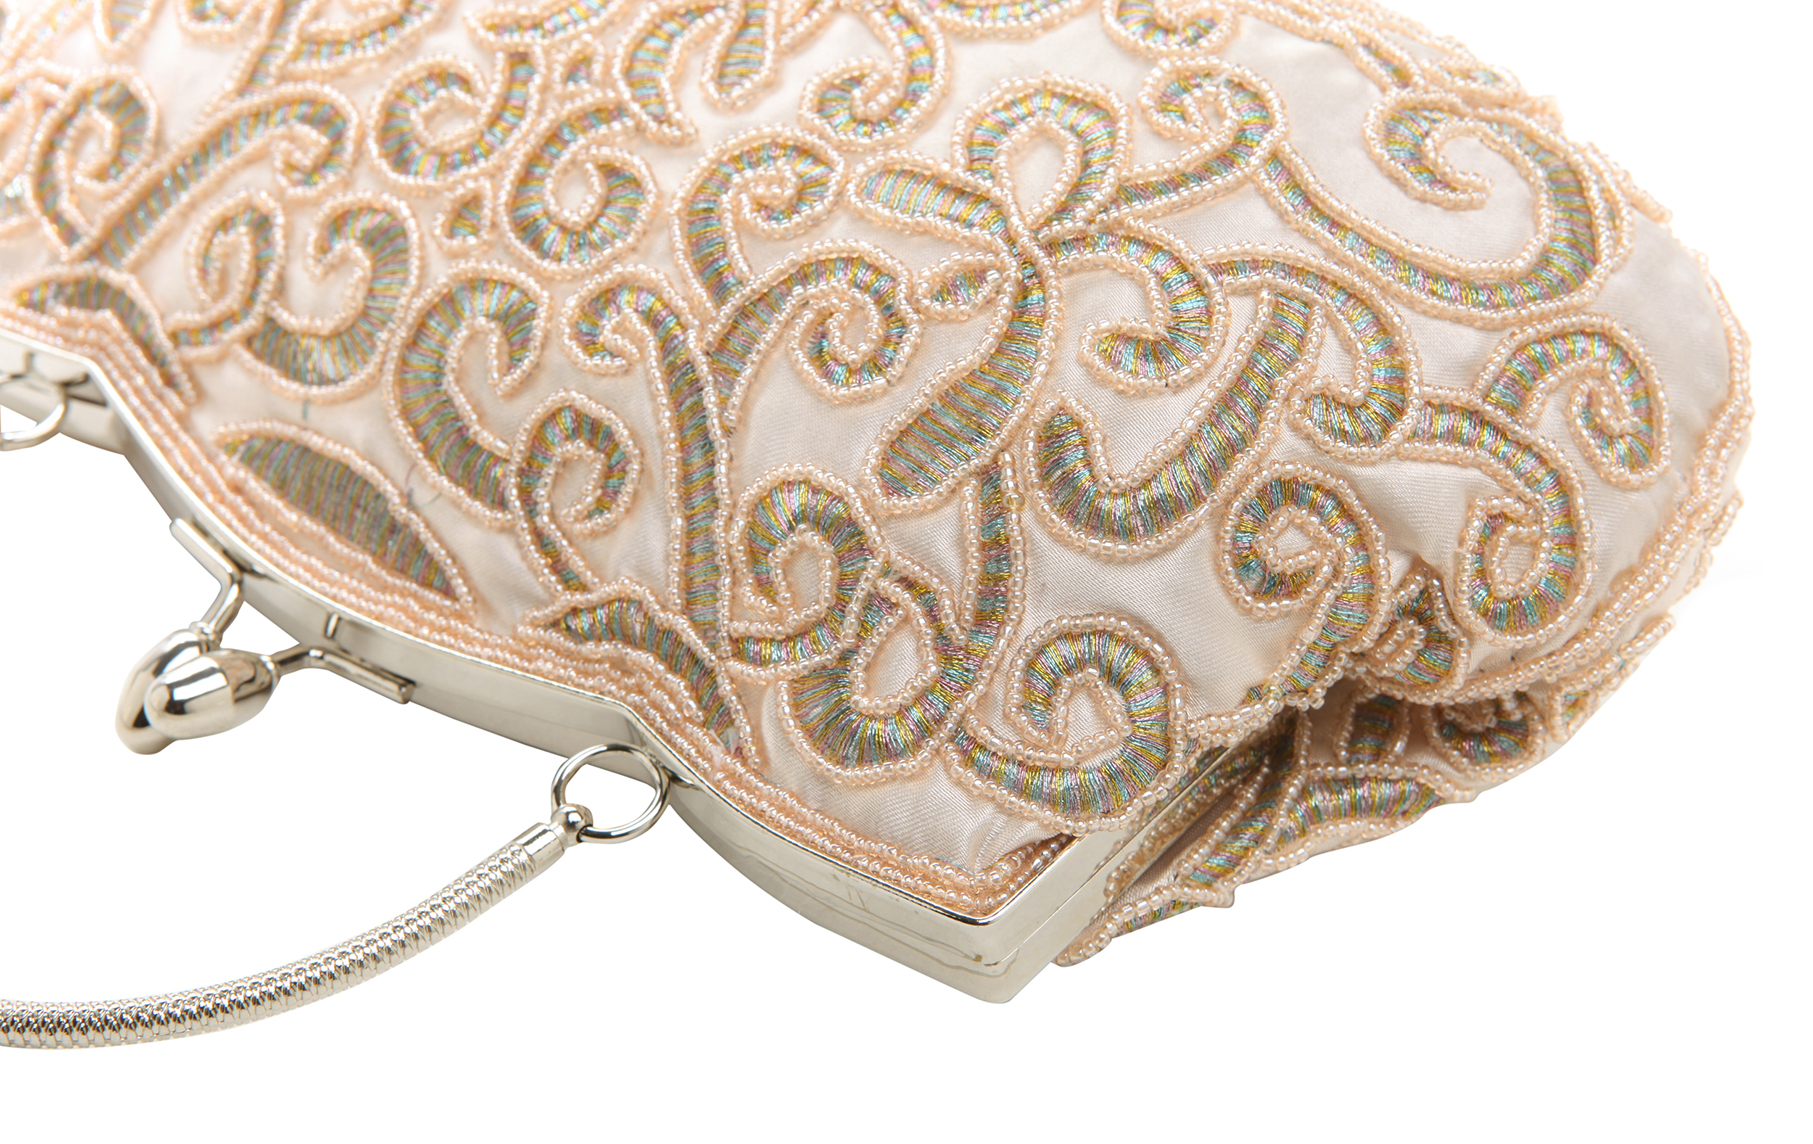 ADELE Champagne Embroidered Evening Handbag closeup